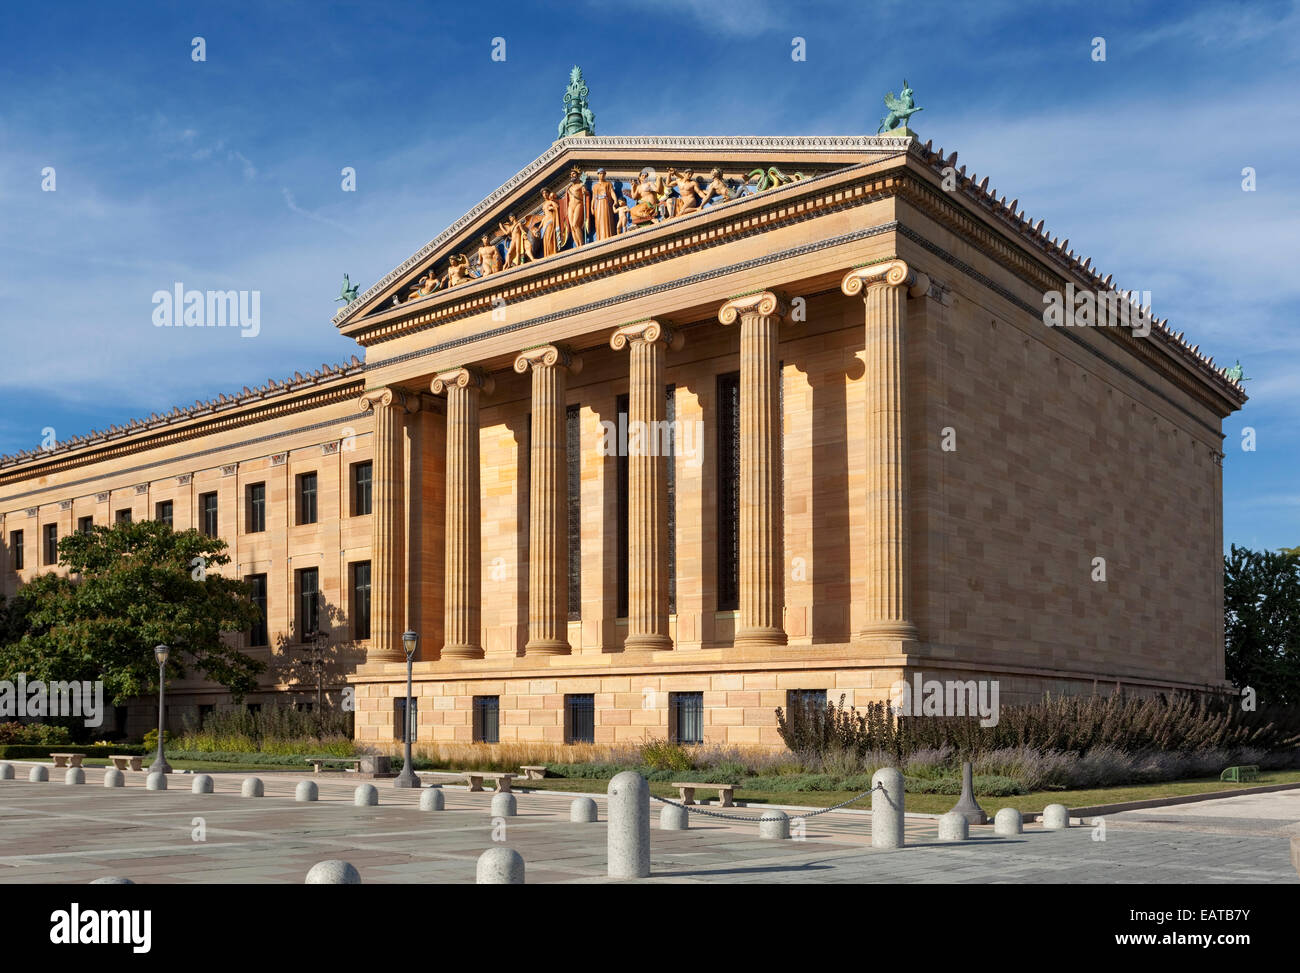 Classic Greek architecture...  The Philadelphia Museum of Art is among the largest art museums in the United States. - Stock Image